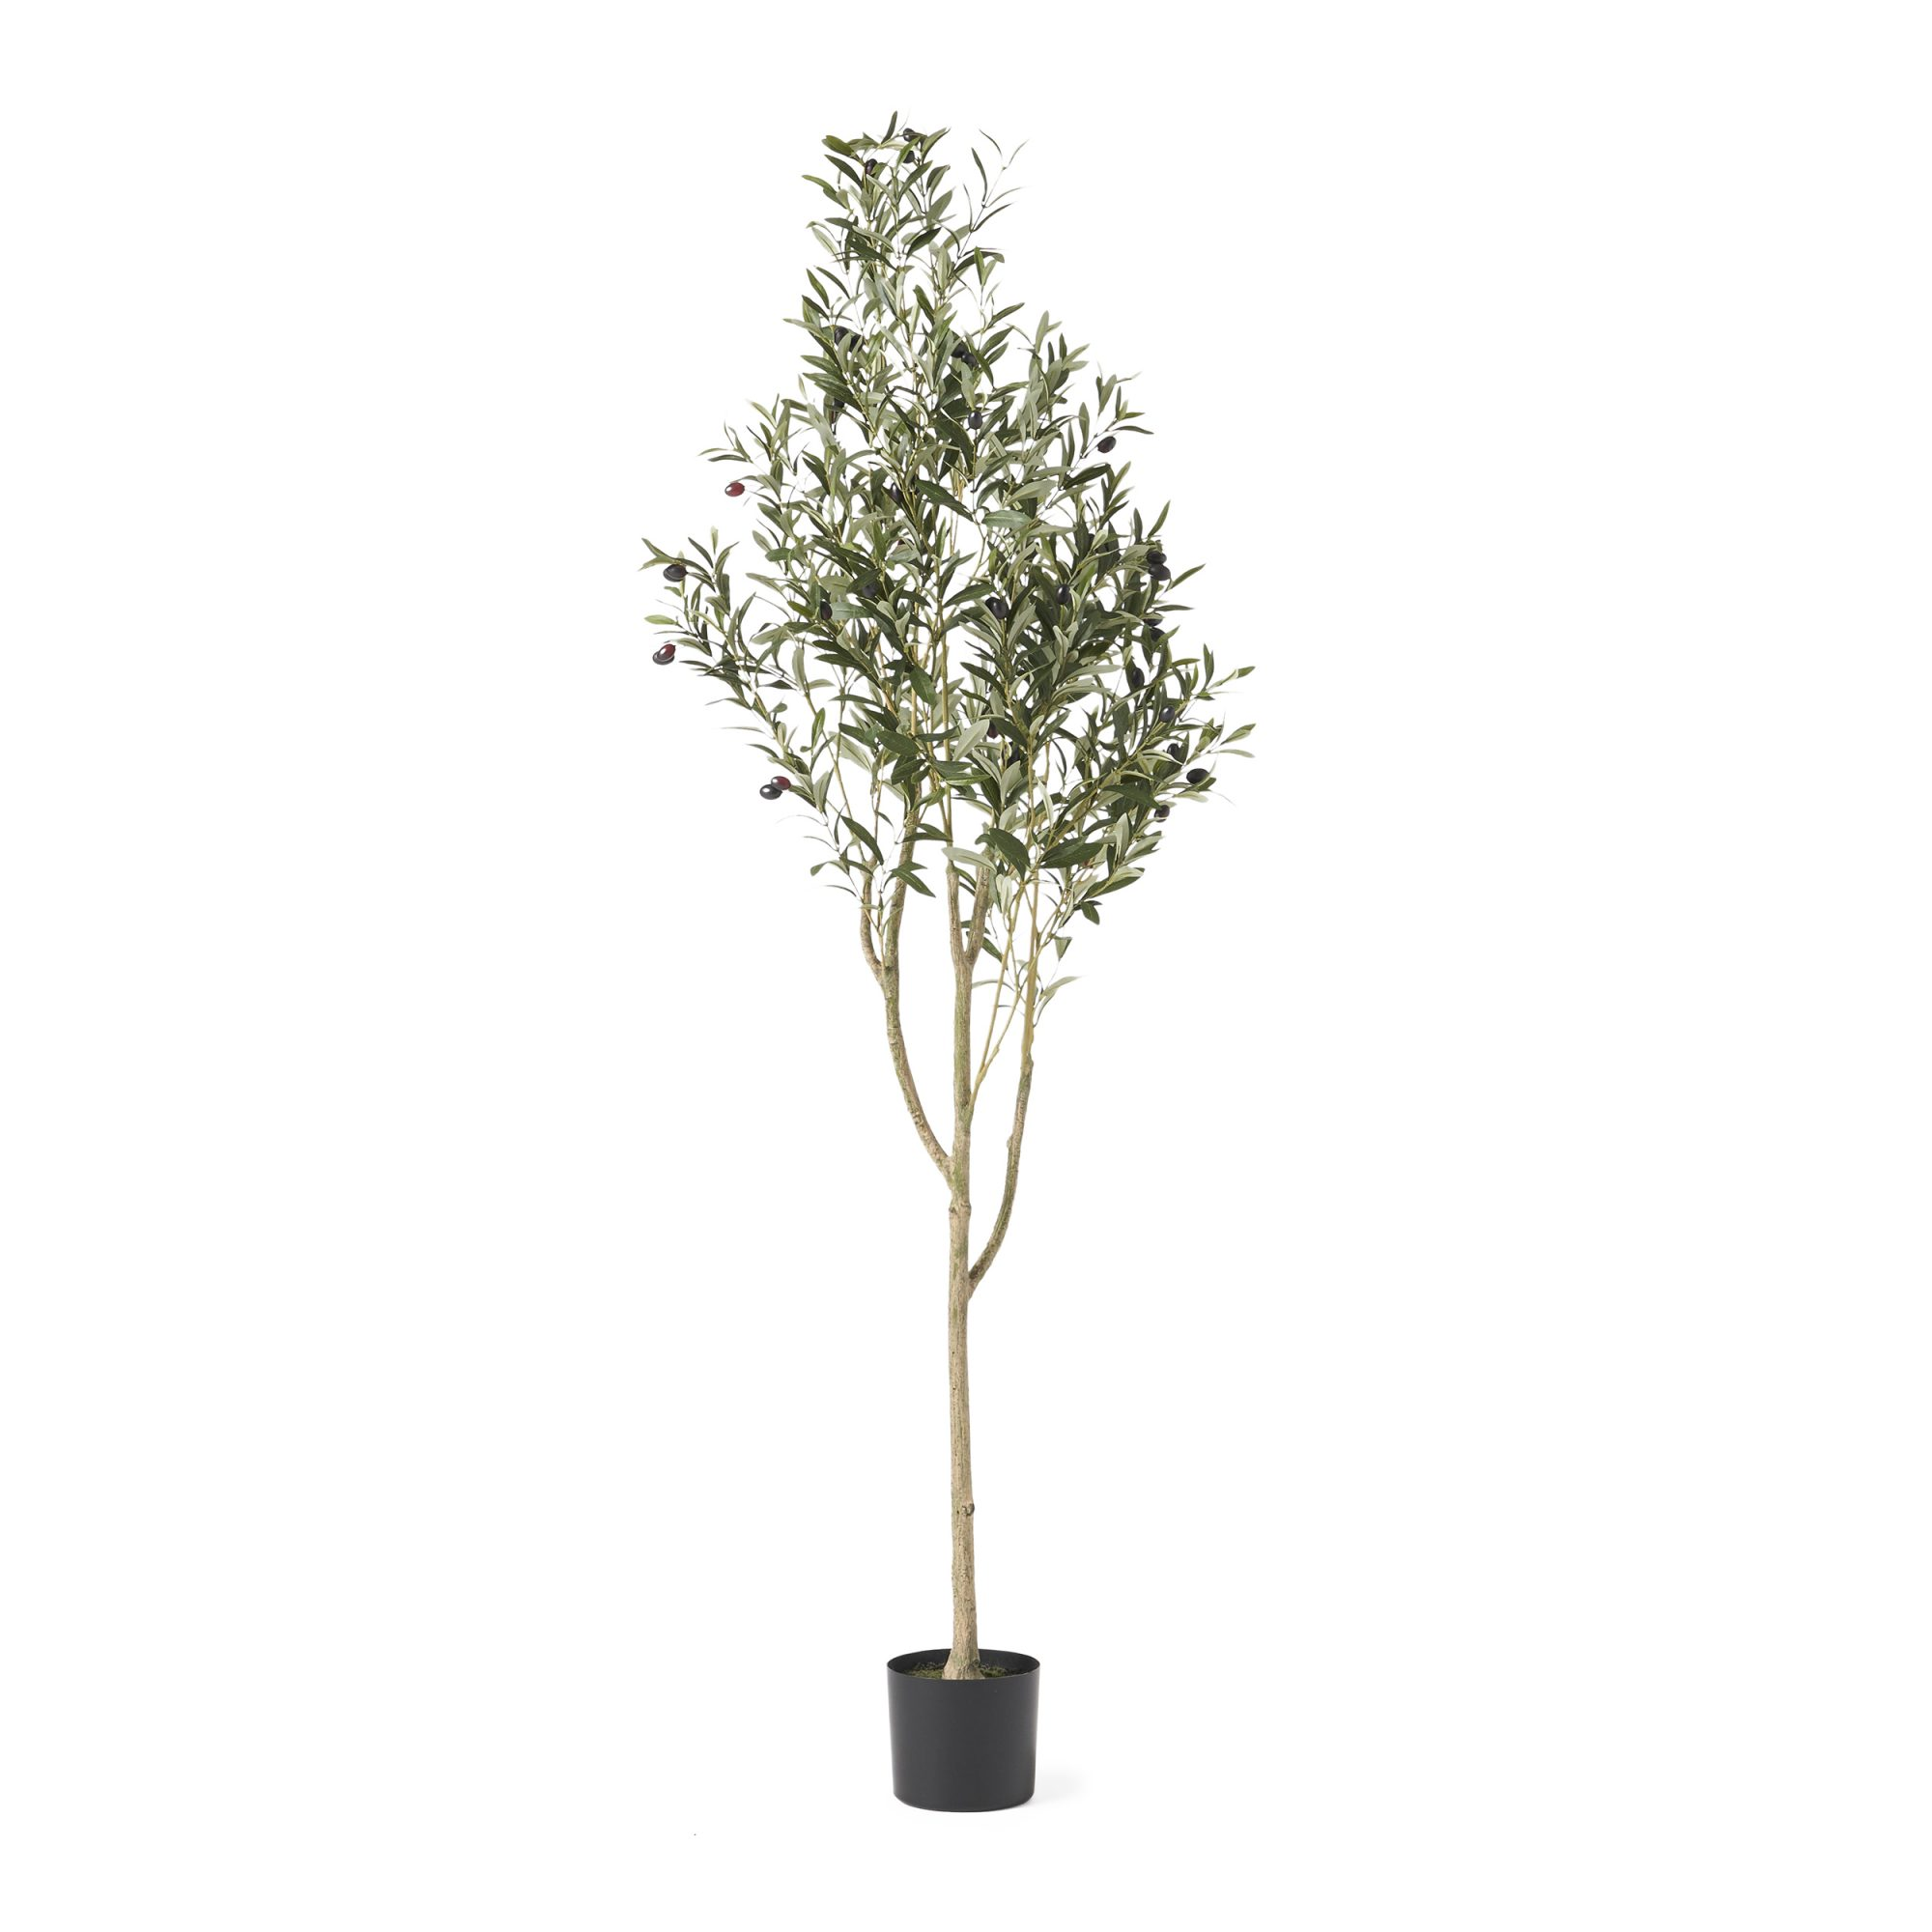 Artificial Olive Tree in Pot_Wayfair 01